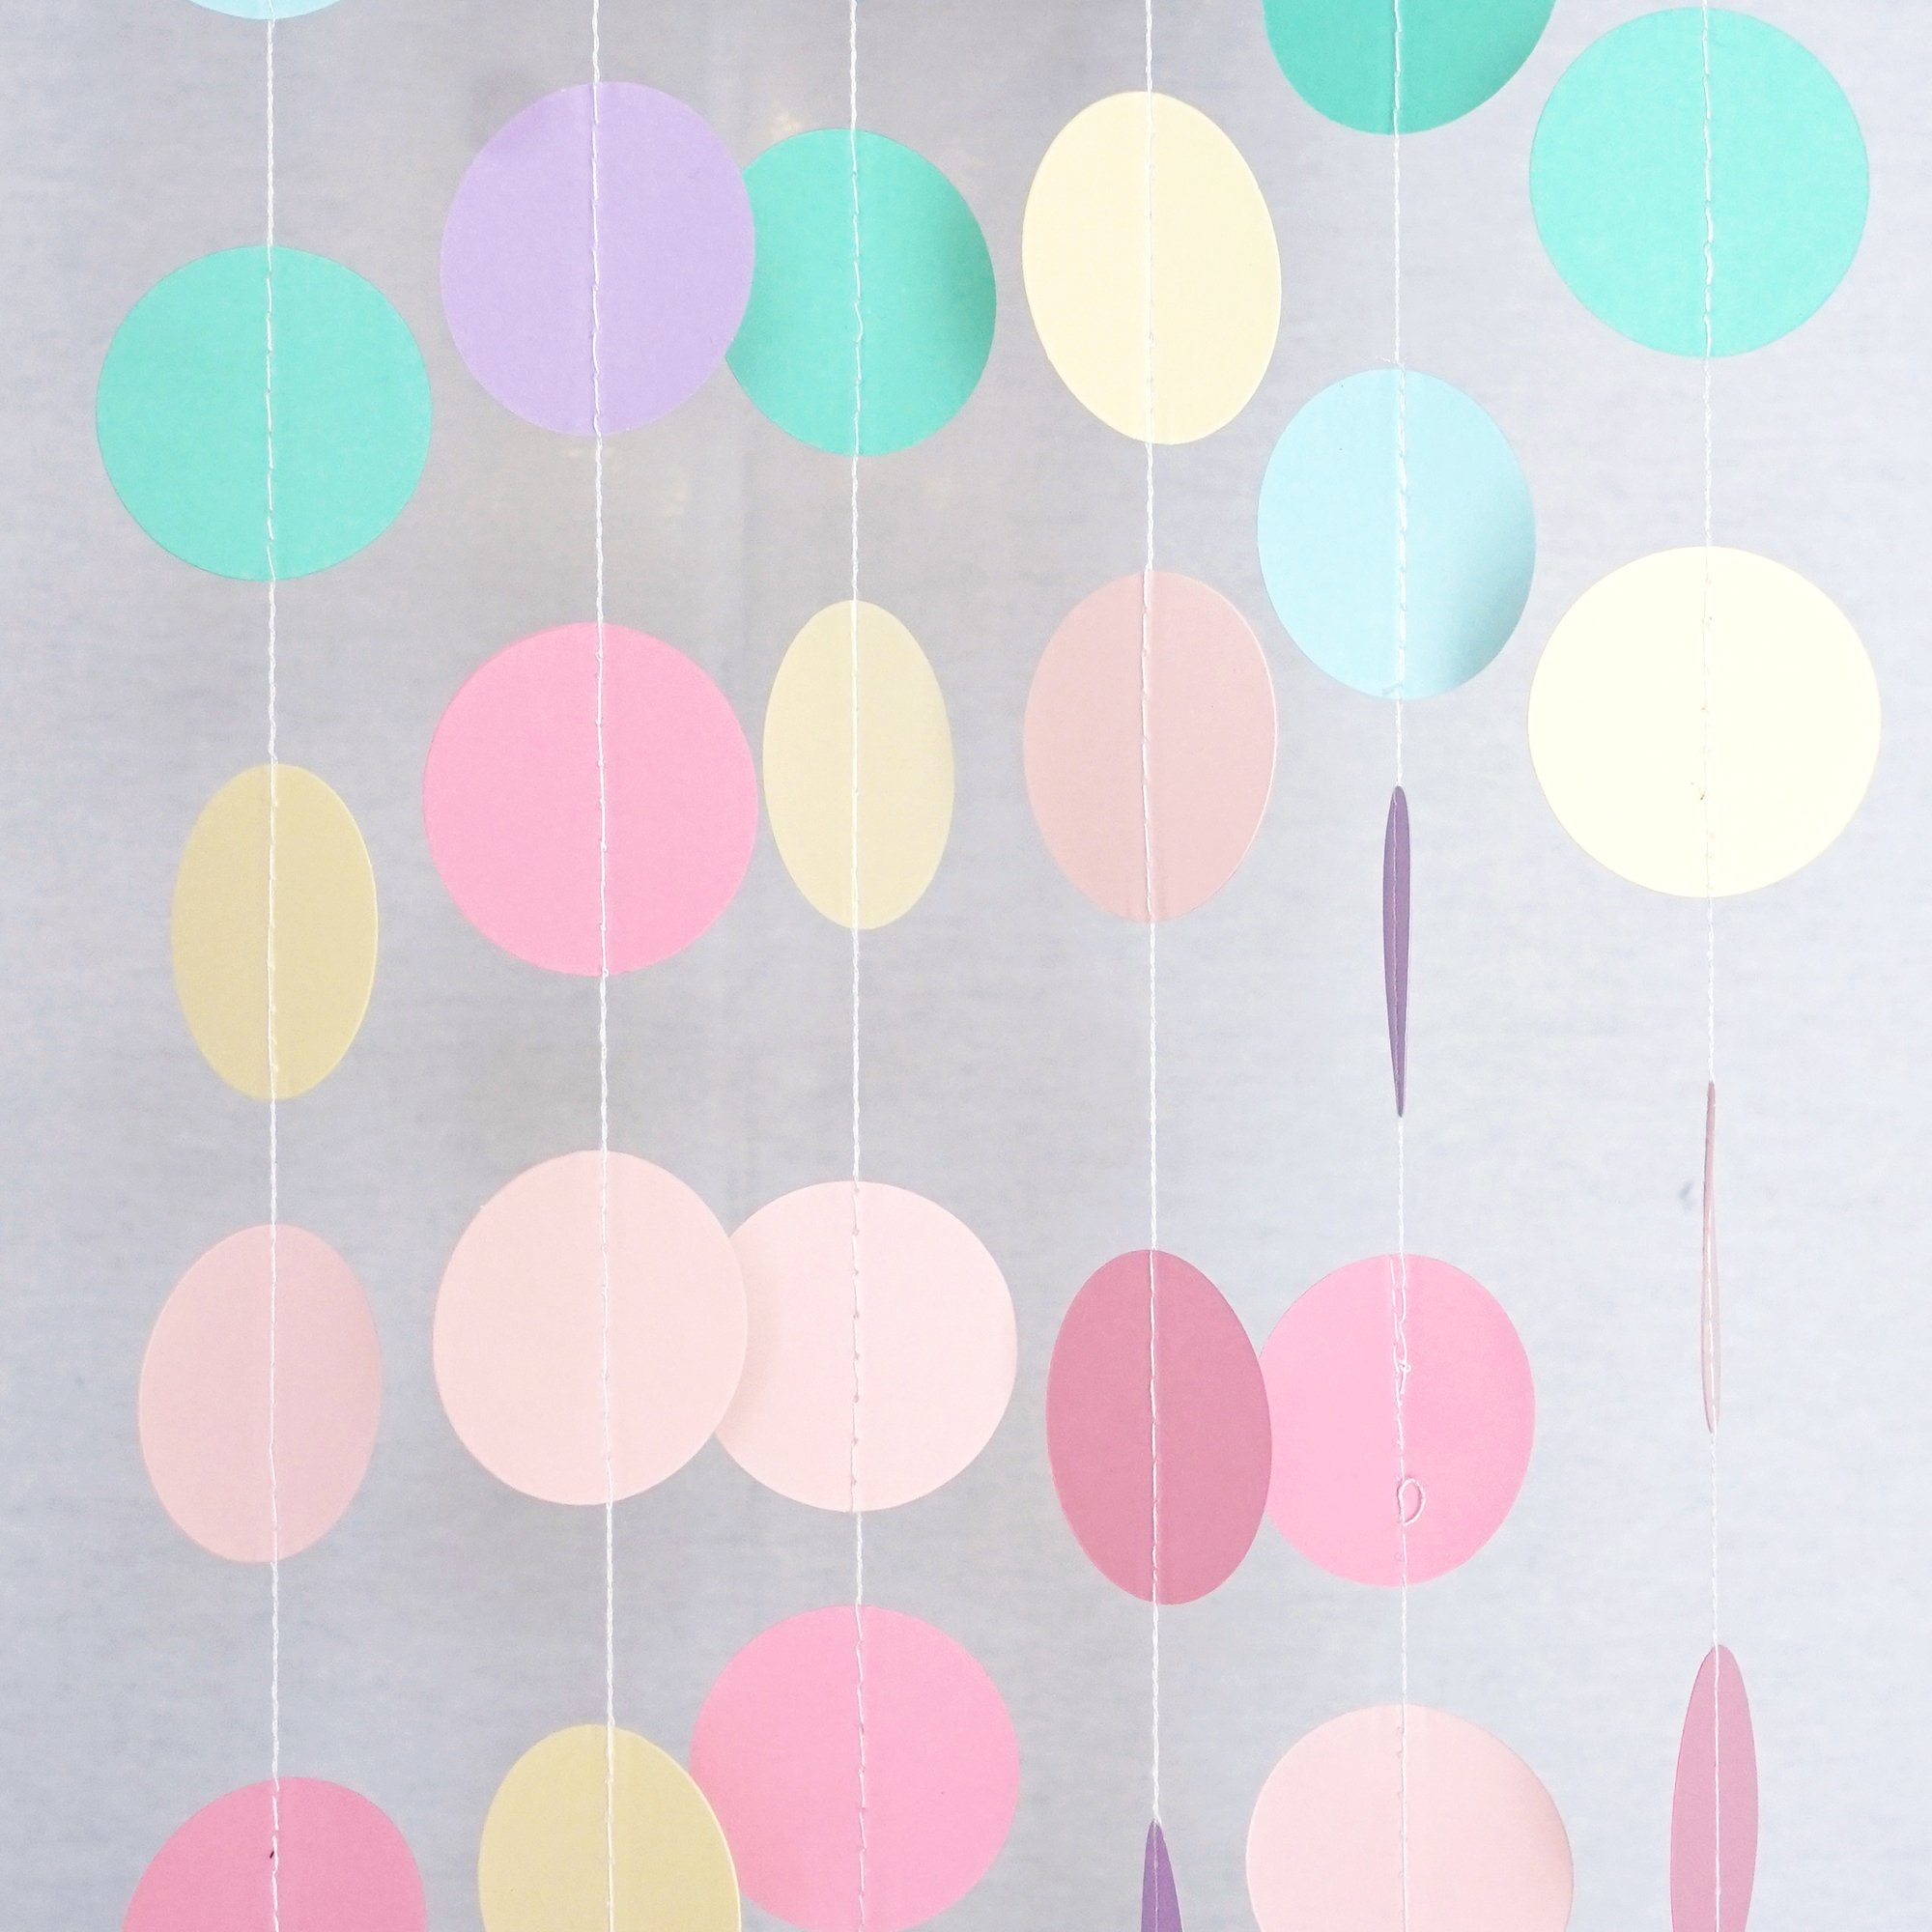 Chloe Elizabeth Circle Dots Paper Party Garland Backdrop (Pack of 4, 10 Feet Per Garland, Total 40 Feet) - Unicorn Pastel by Chloe Elizabeth